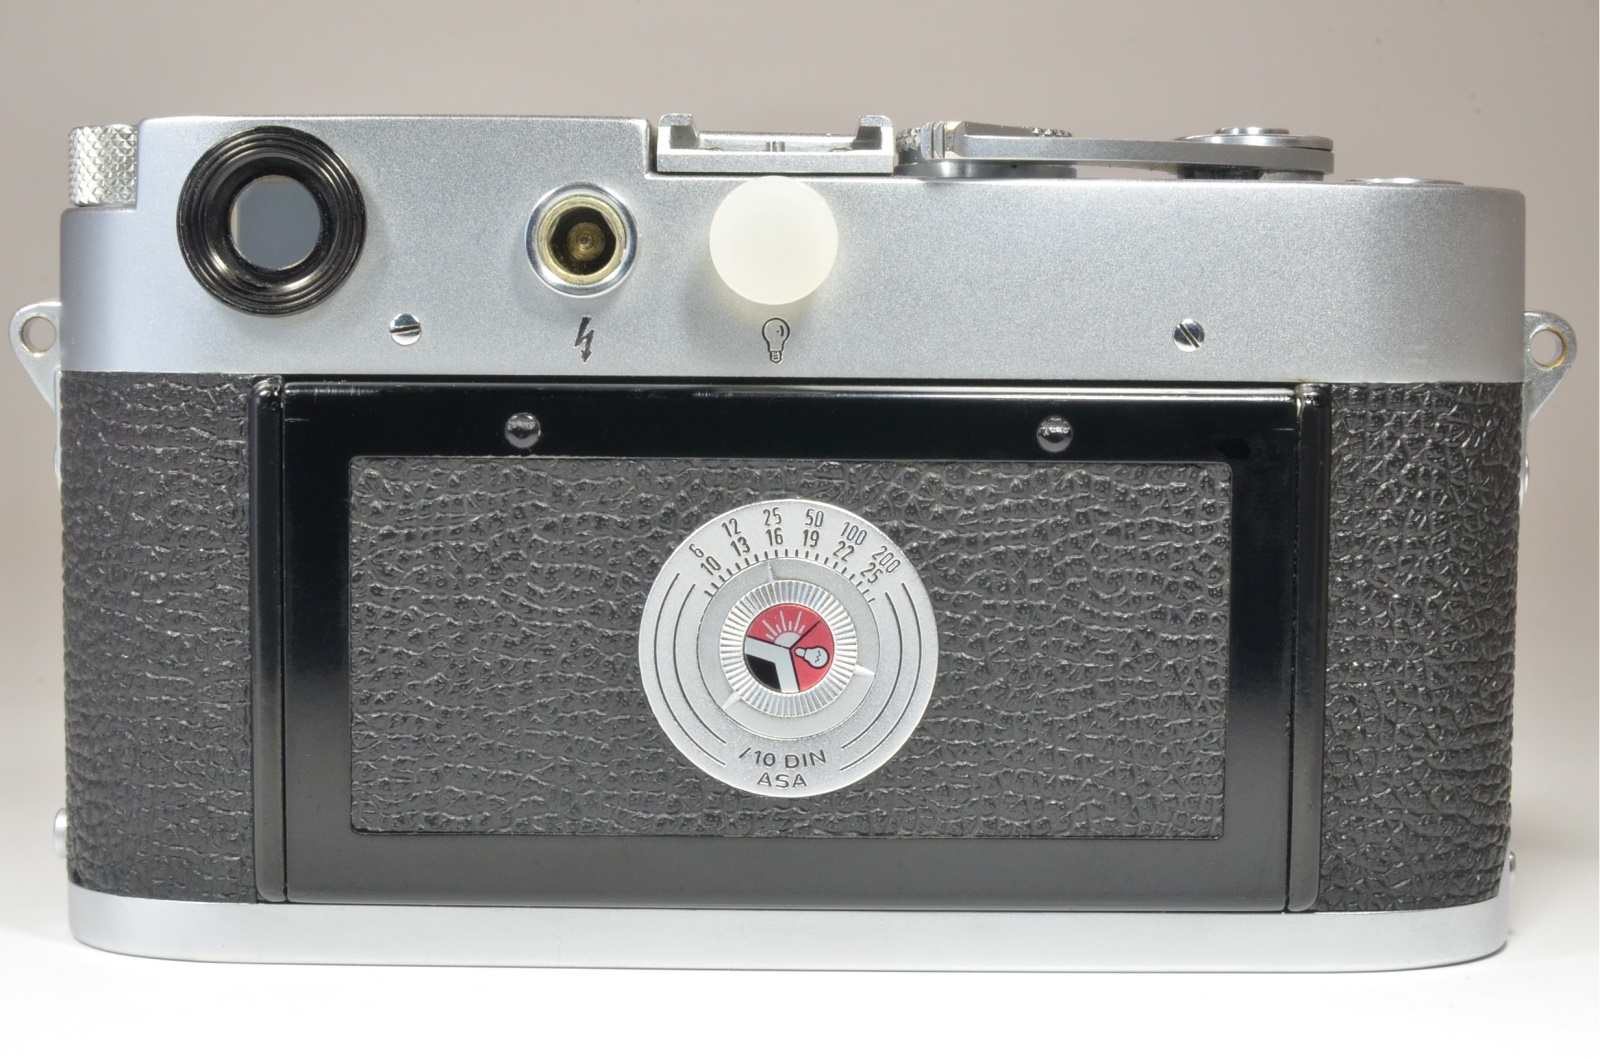 leica m3 double stroke s/n 780714 year 1955 with strap from japan